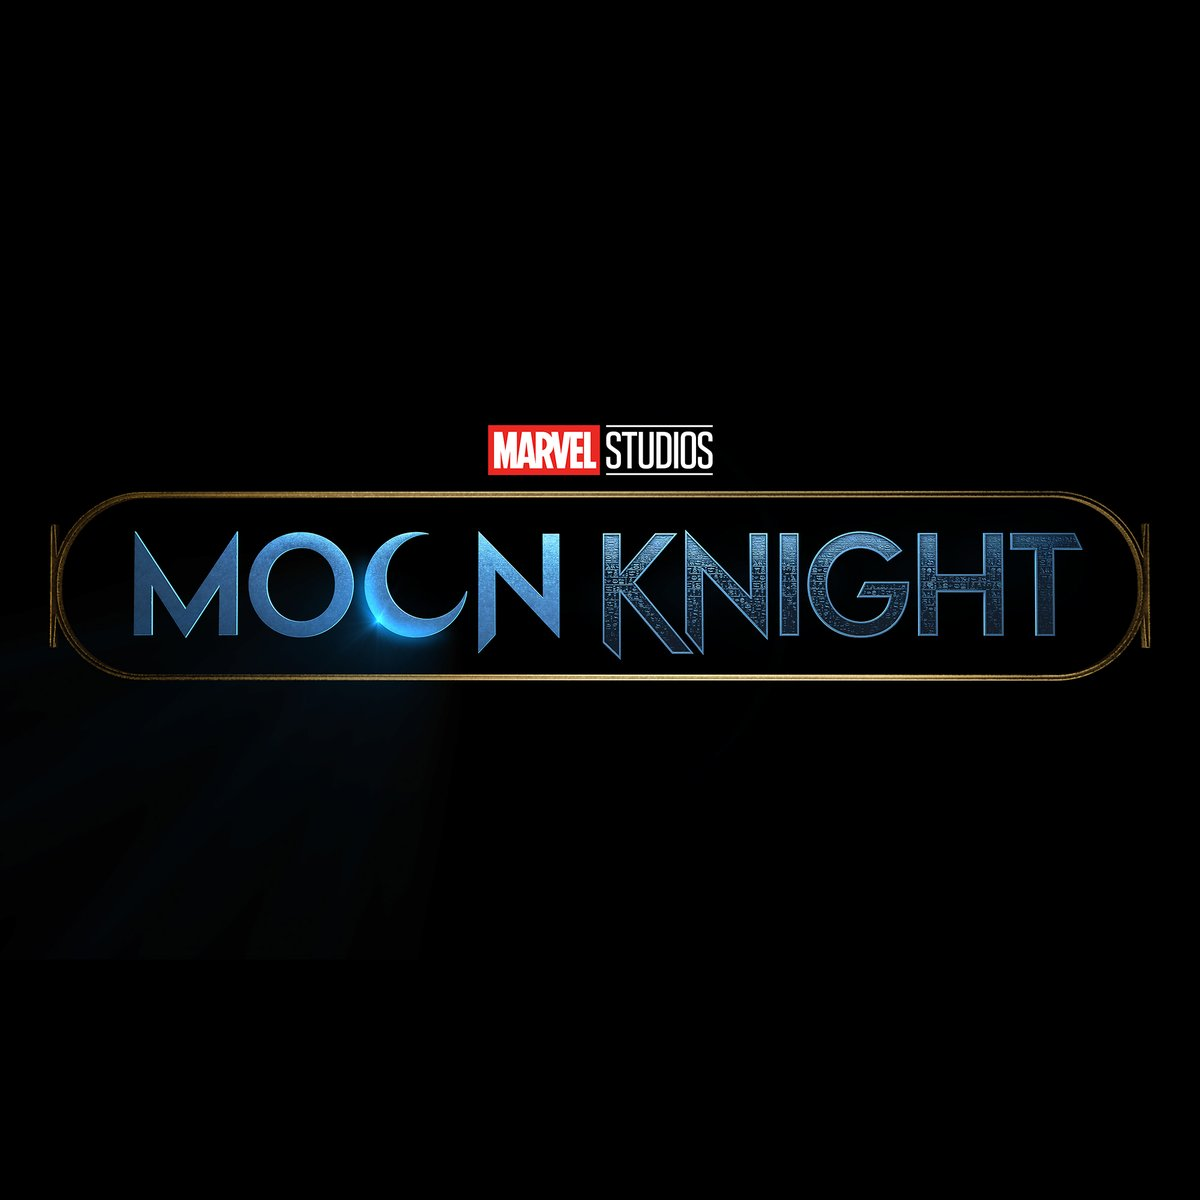 Replying to @Disney: Moon Knight, an Original Series about a complex vigilante, is coming to @DisneyPlus. 🌙